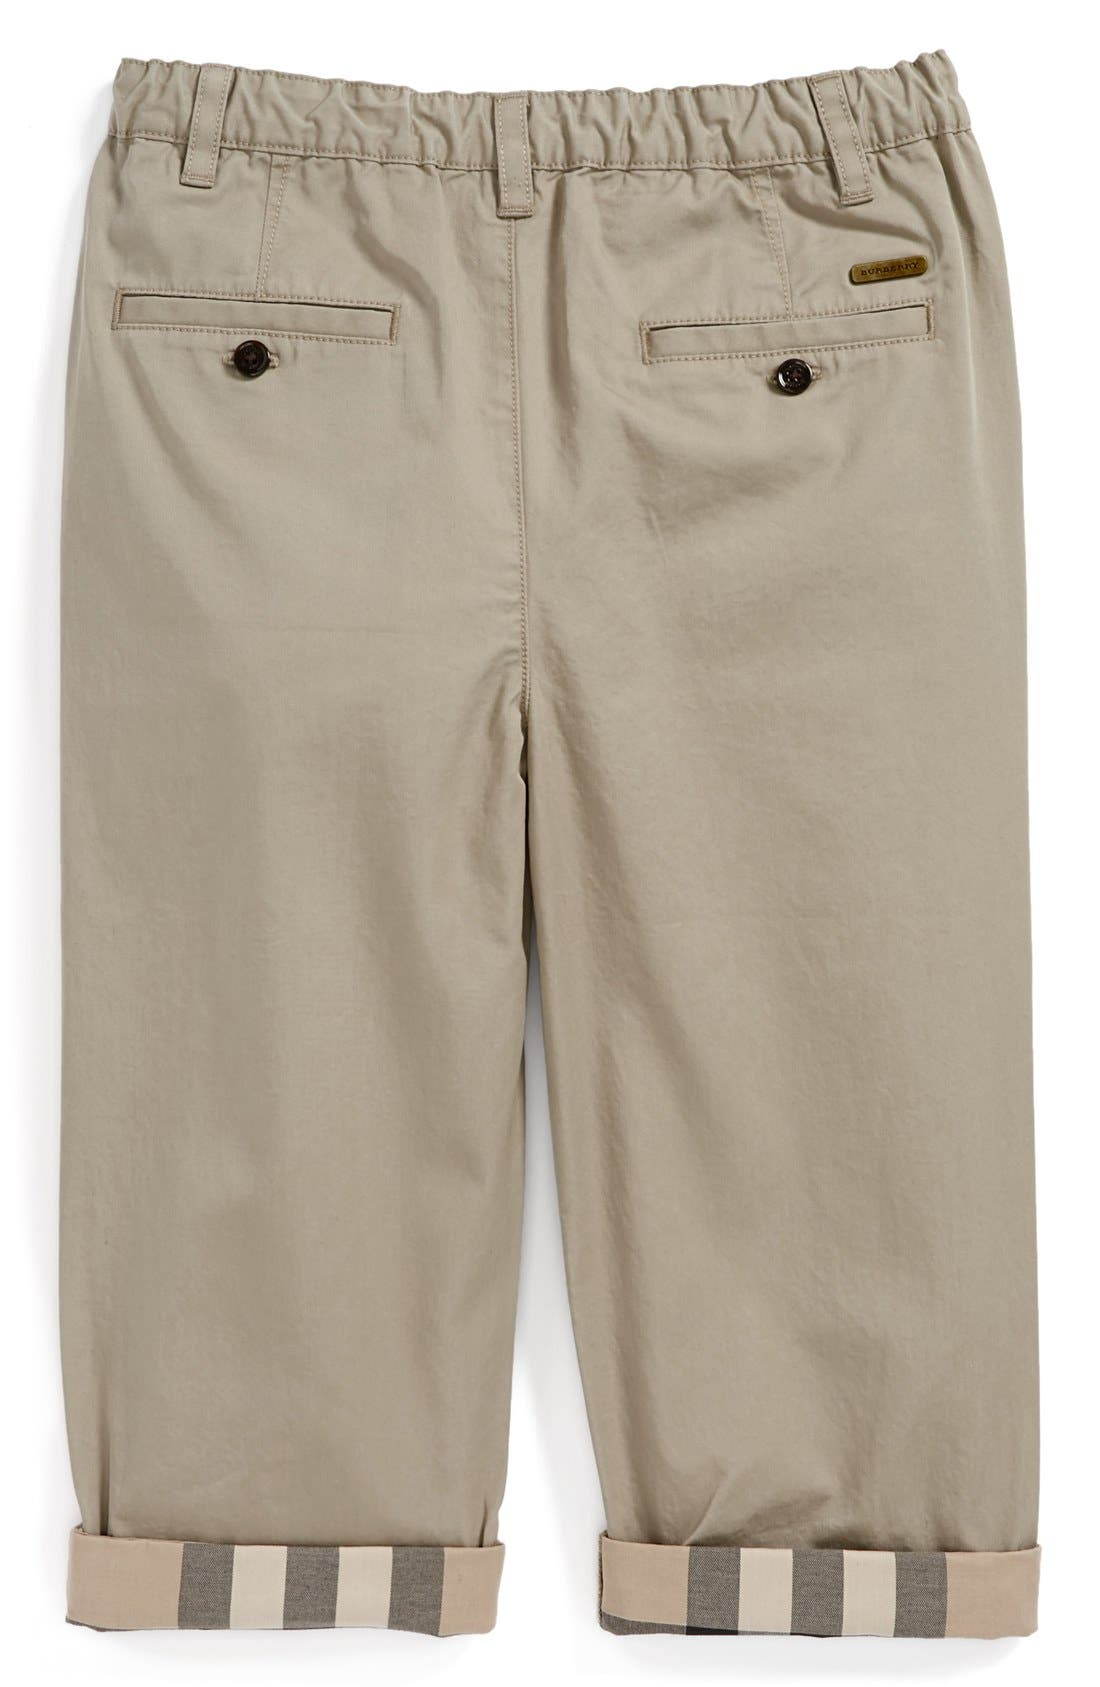 'Ricky' Check Lined Roll Cuff Pants,                             Alternate thumbnail 3, color,                             252